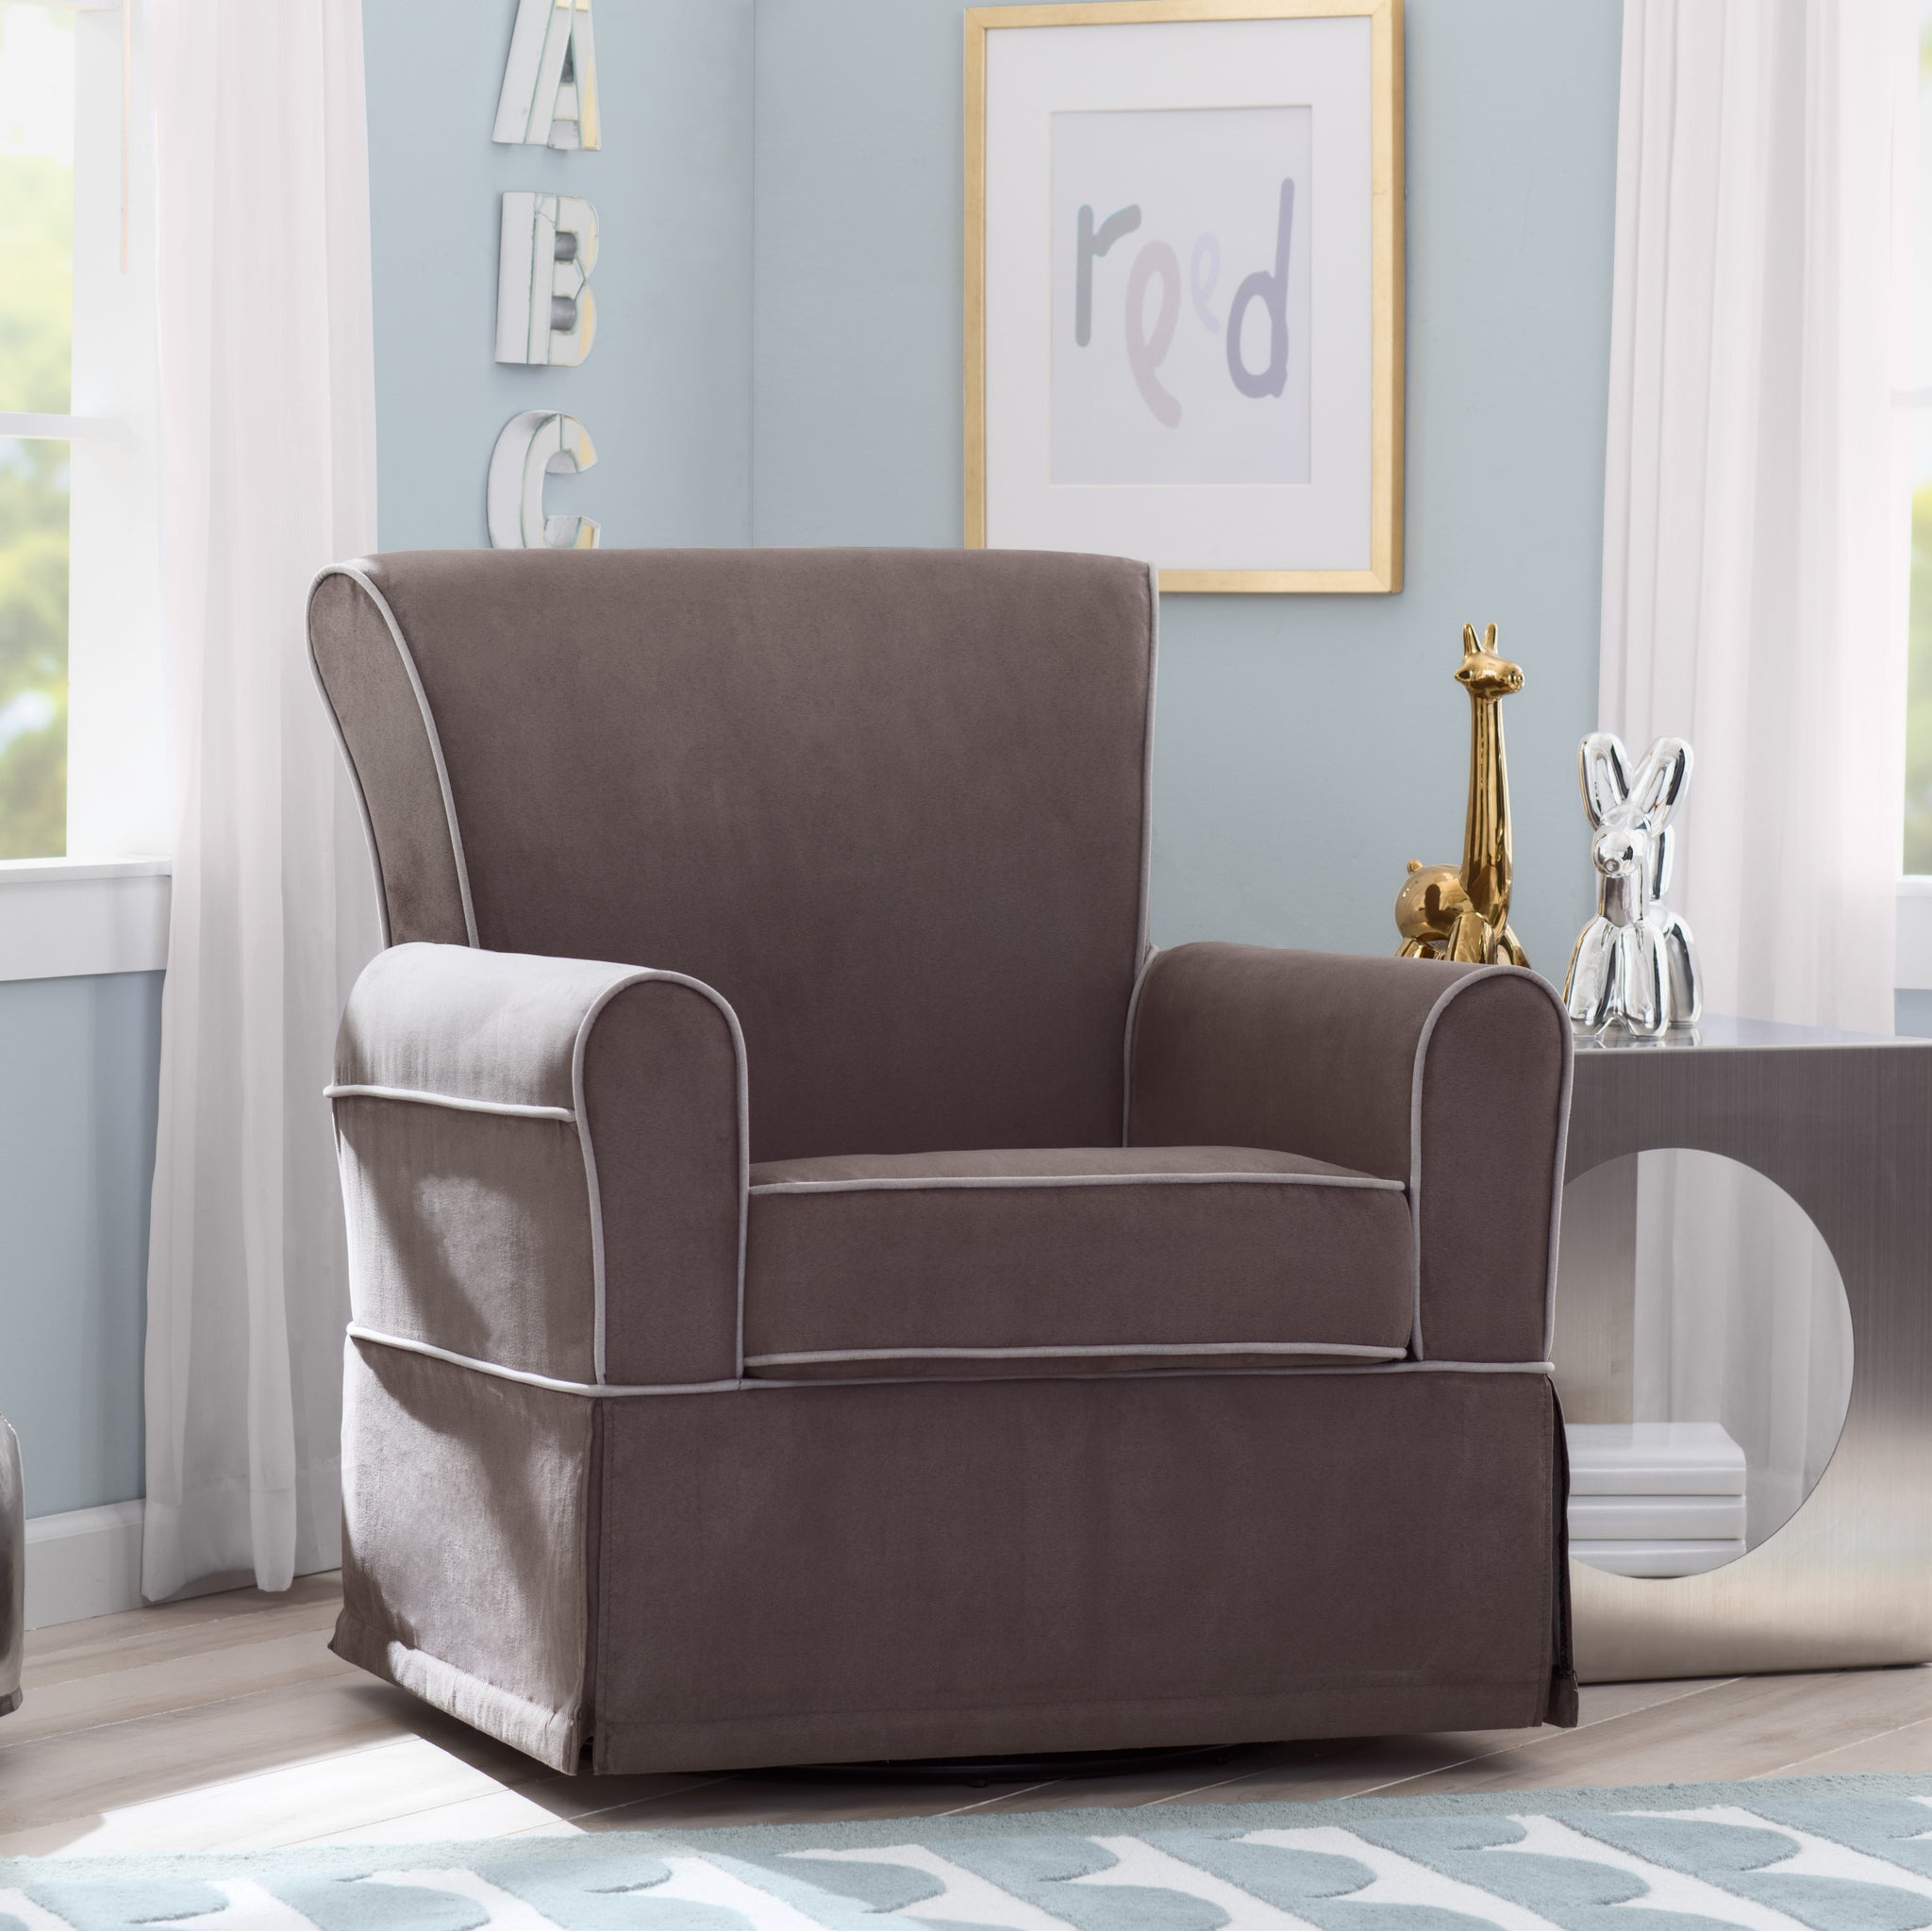 Benbridge Upholstered Glider